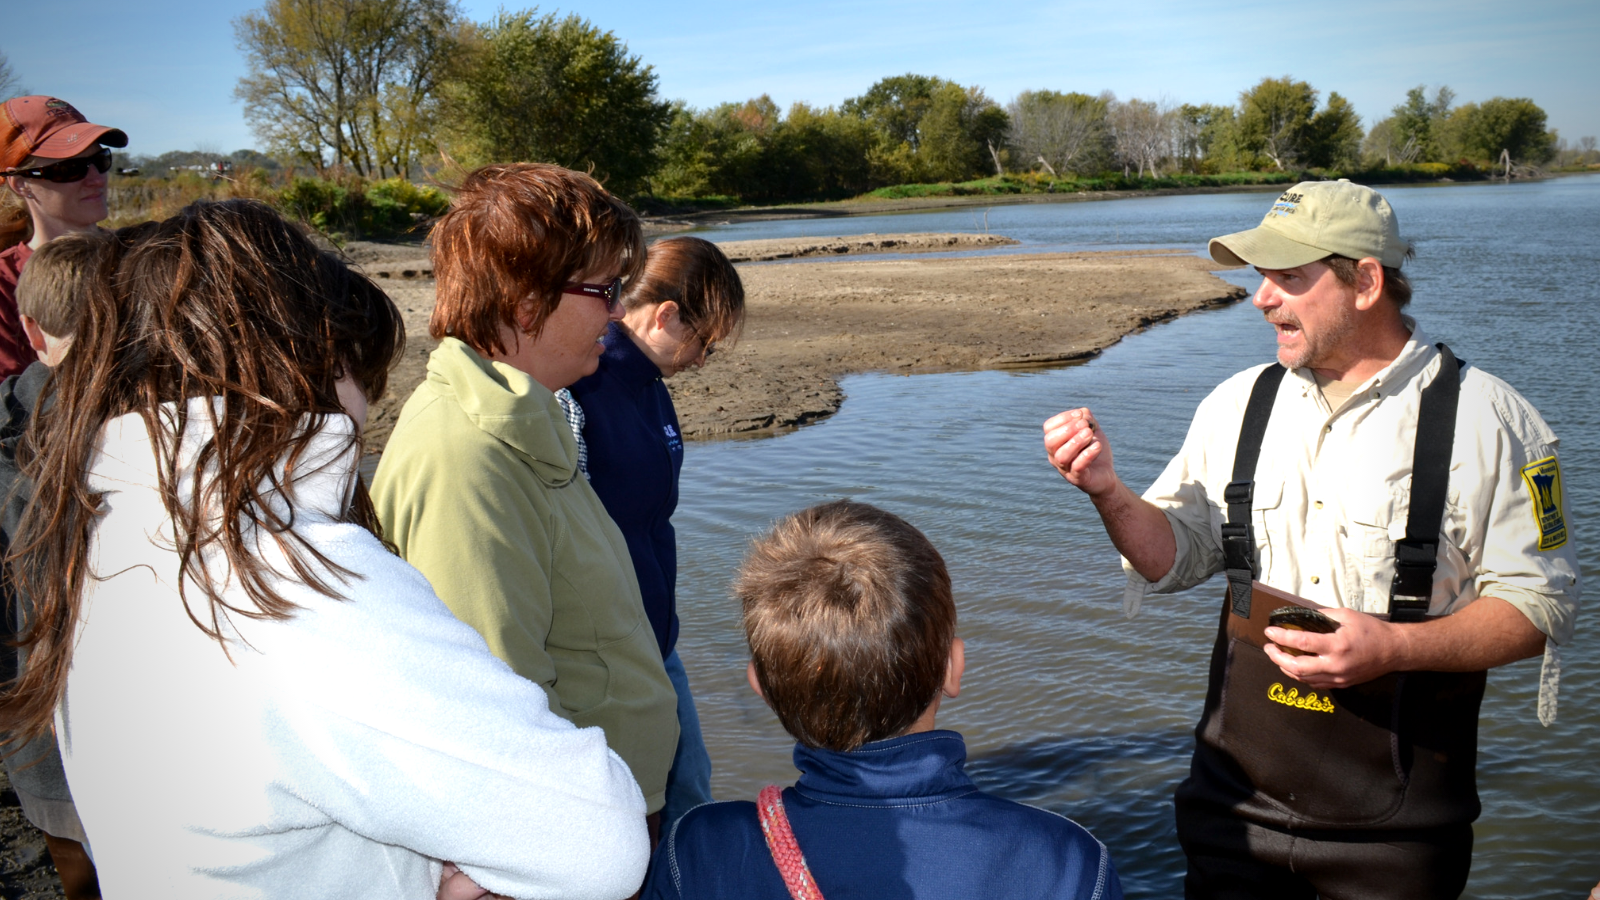 People learning about mussels in a river.